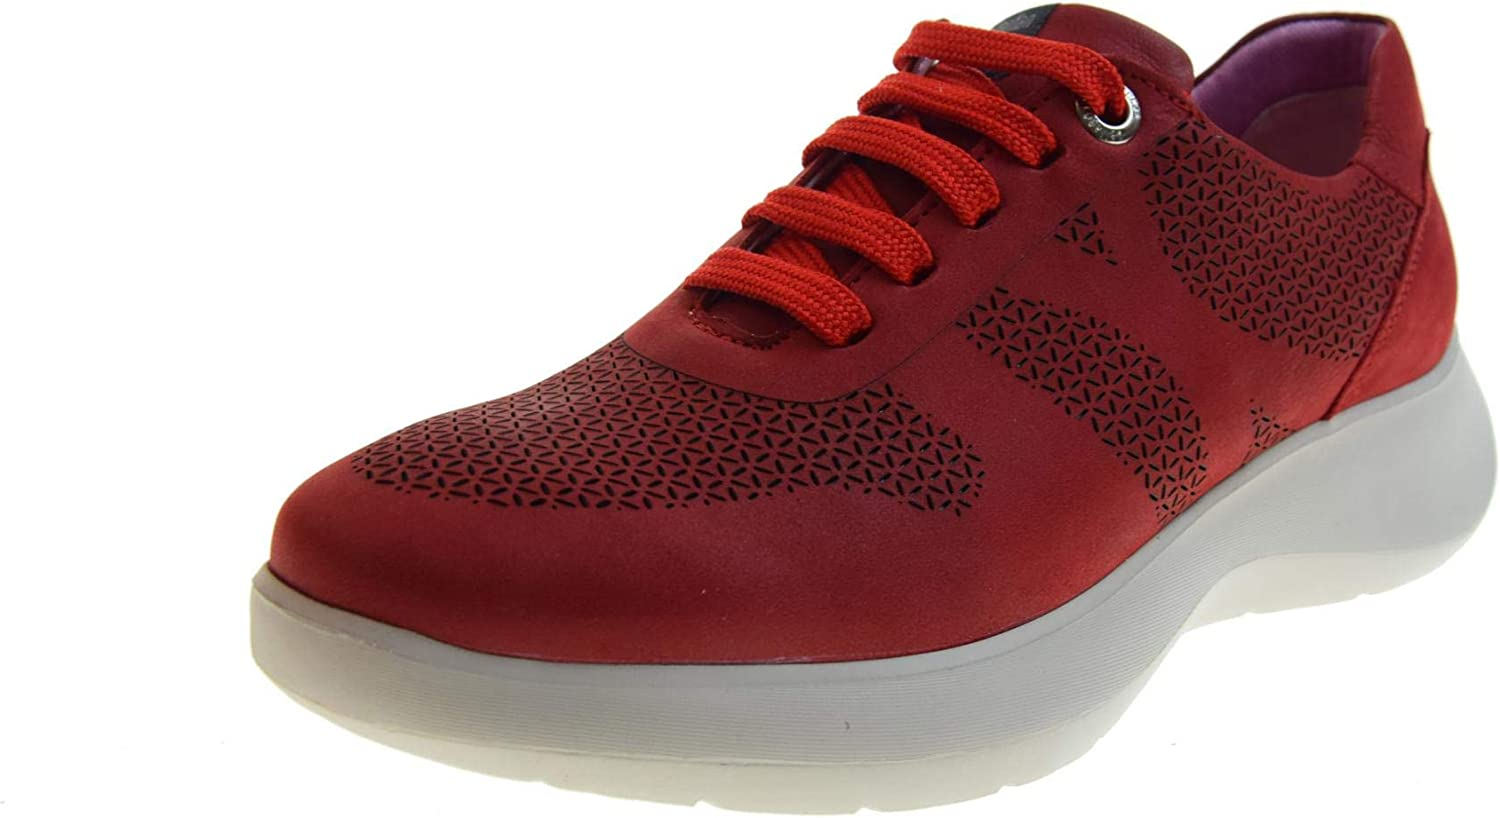 CALLAGHAN women's shoes low sneakers 17001 RED